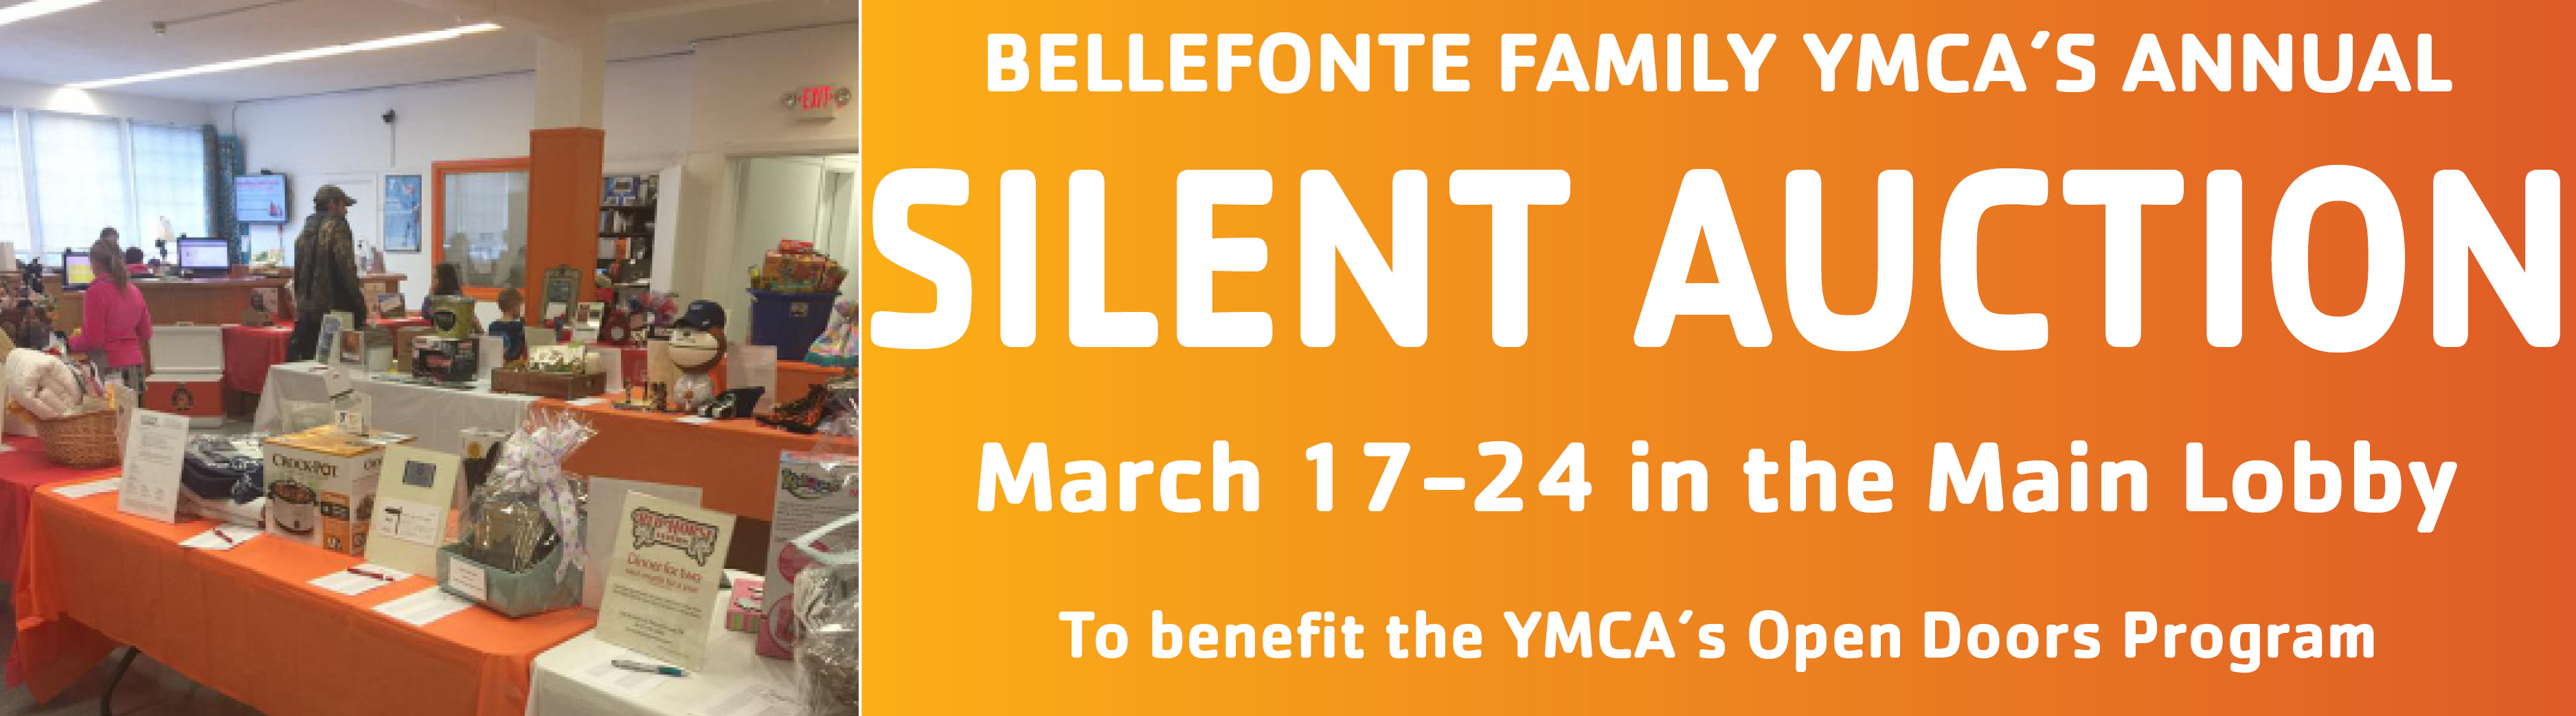 Bellefonte Silent Auction